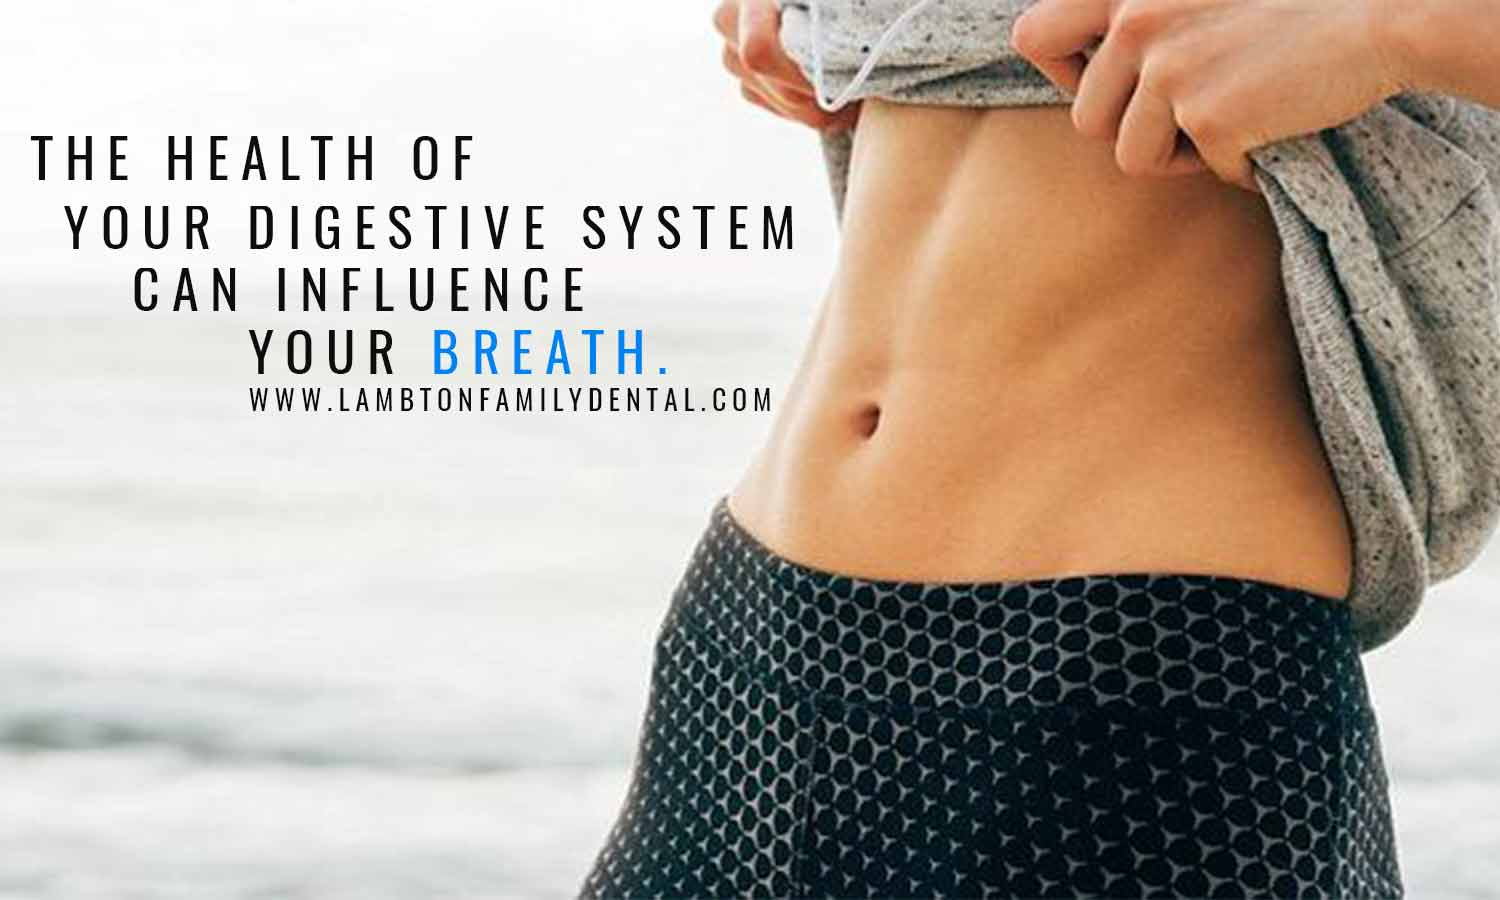 health of your digestive system can influence your breath